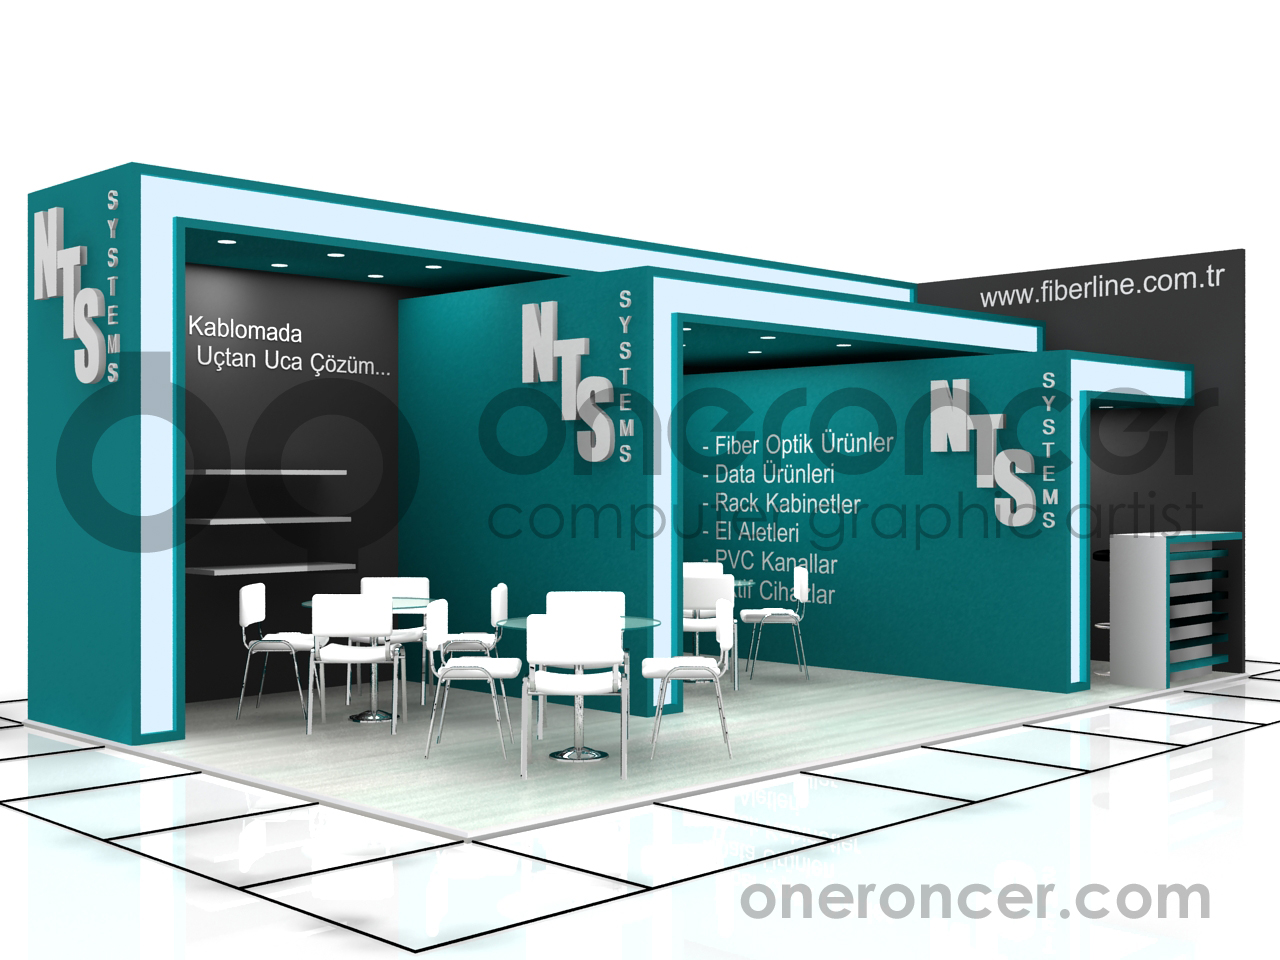 Exhibition Stand Cebit 2010 by oneroncer